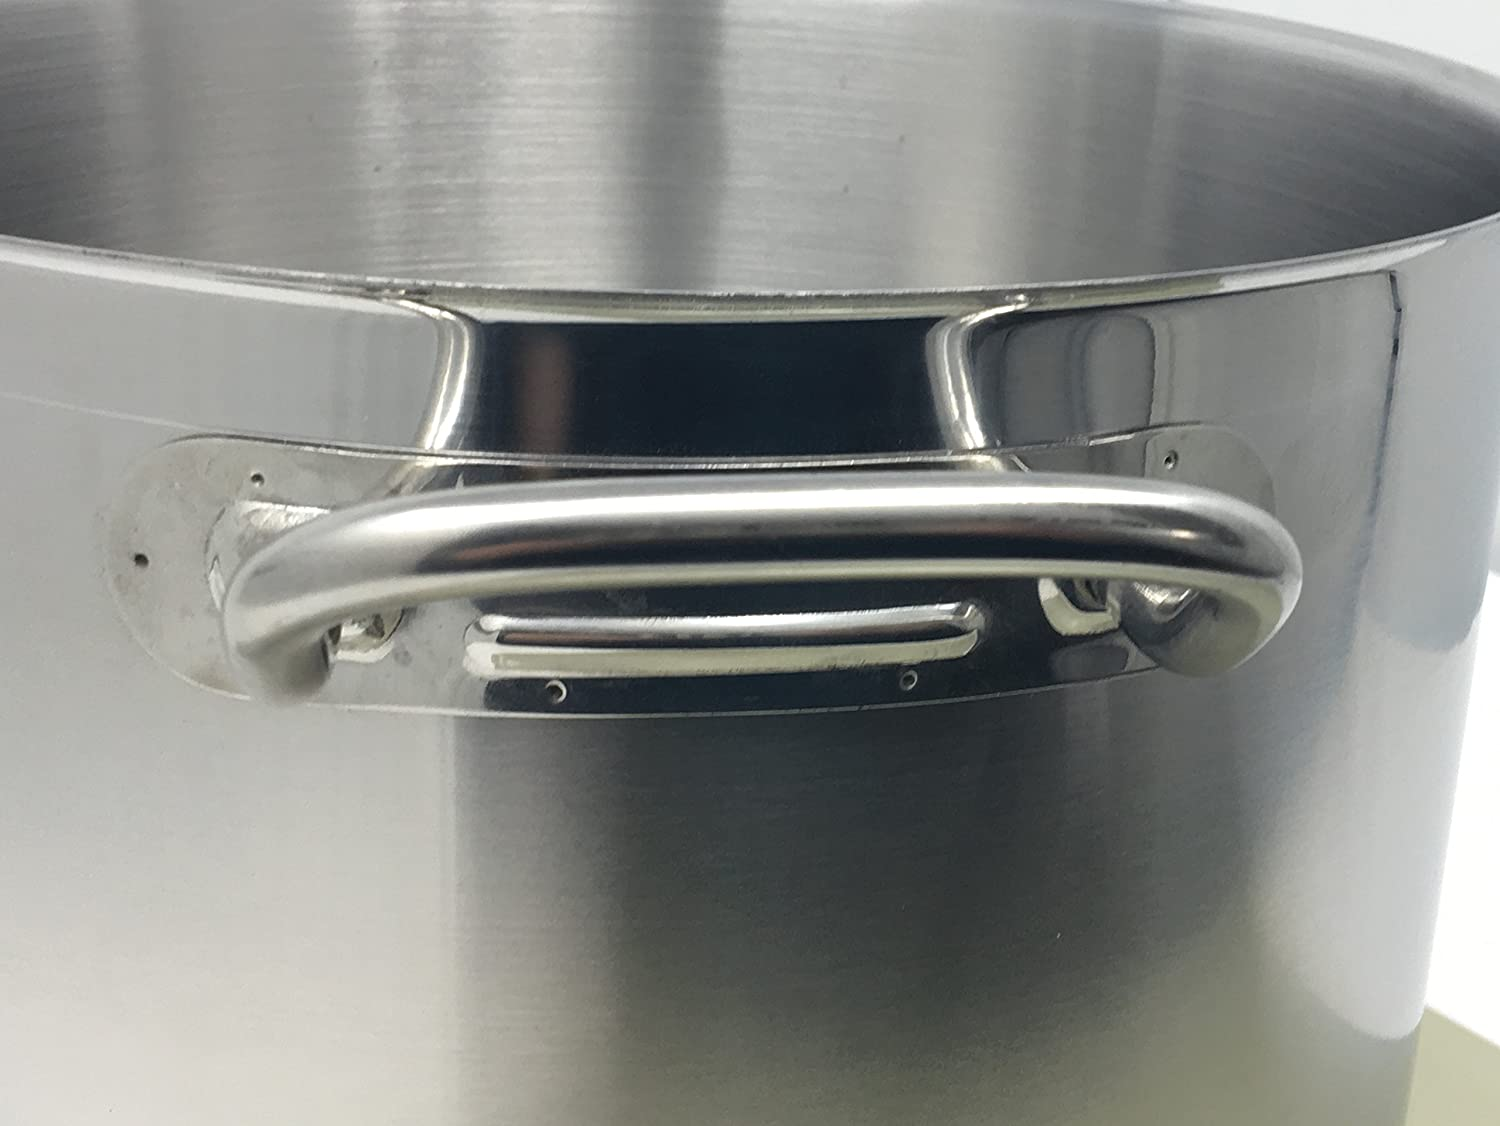 Cuisinart EOS106-28W Chef s Classic Enamel on Steel Stockpot with Cover, 10-Quart, White